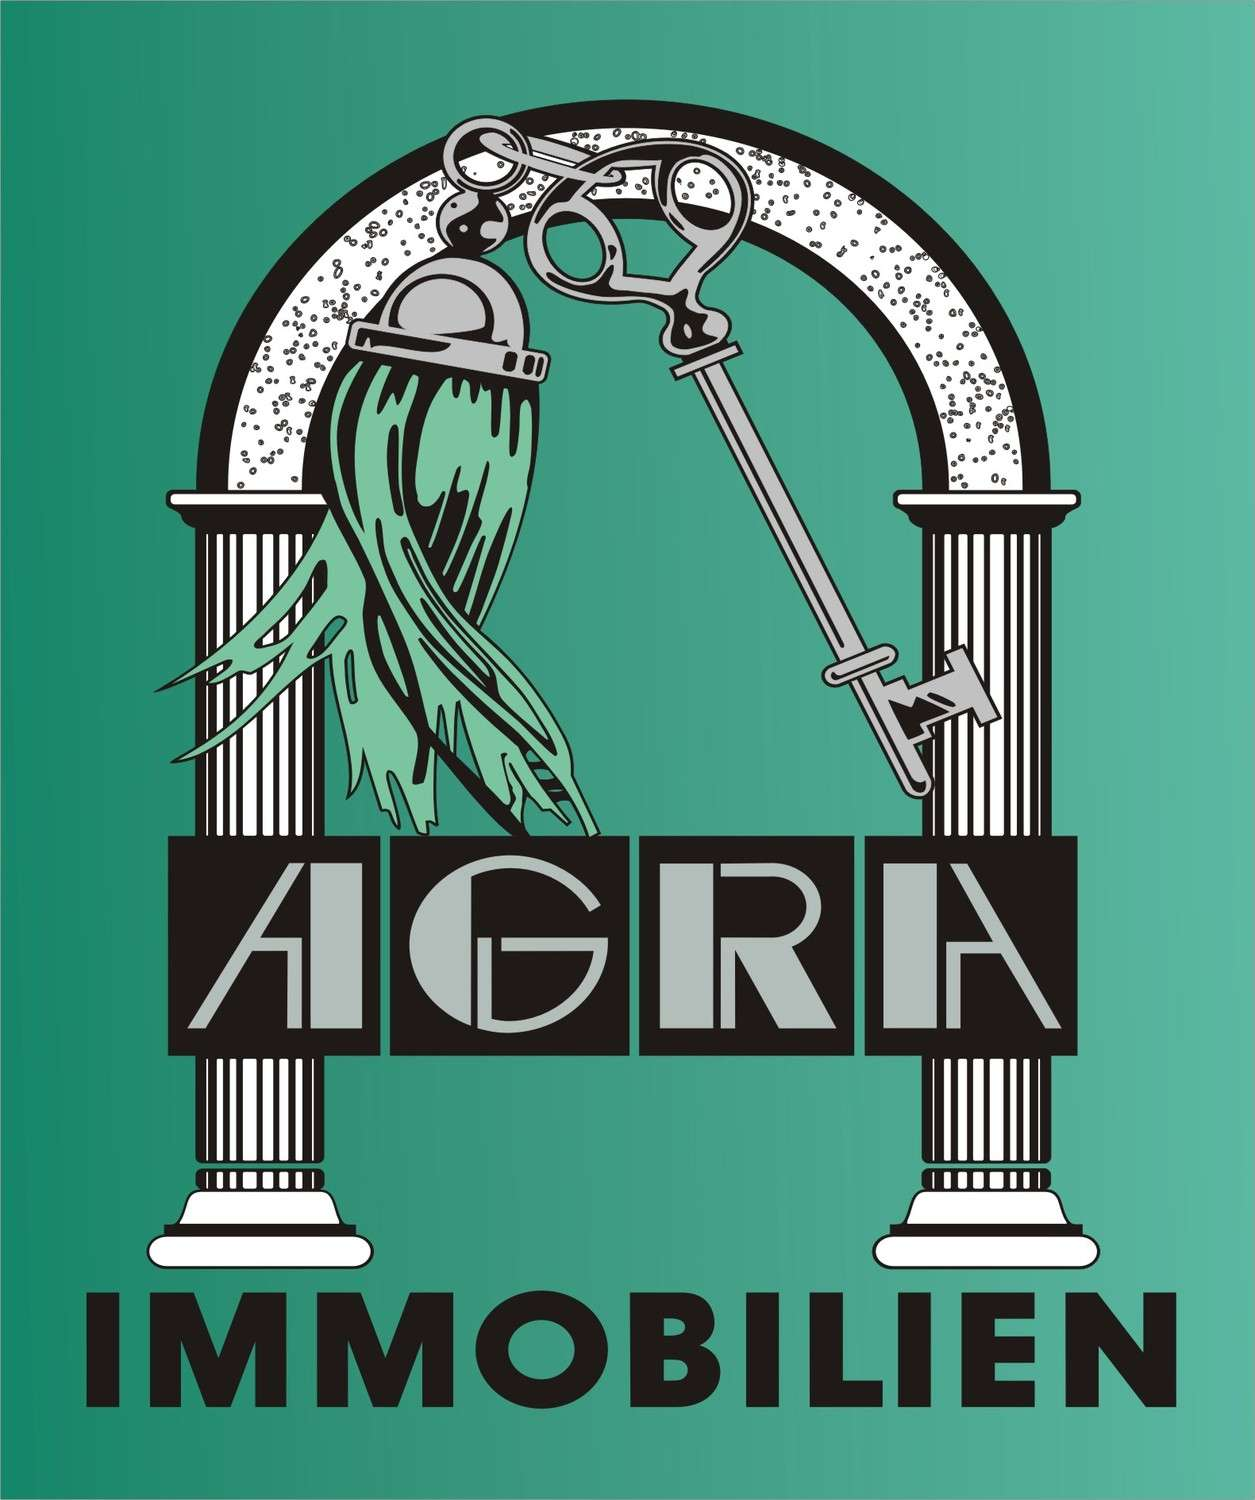 AGRA - Immobilien